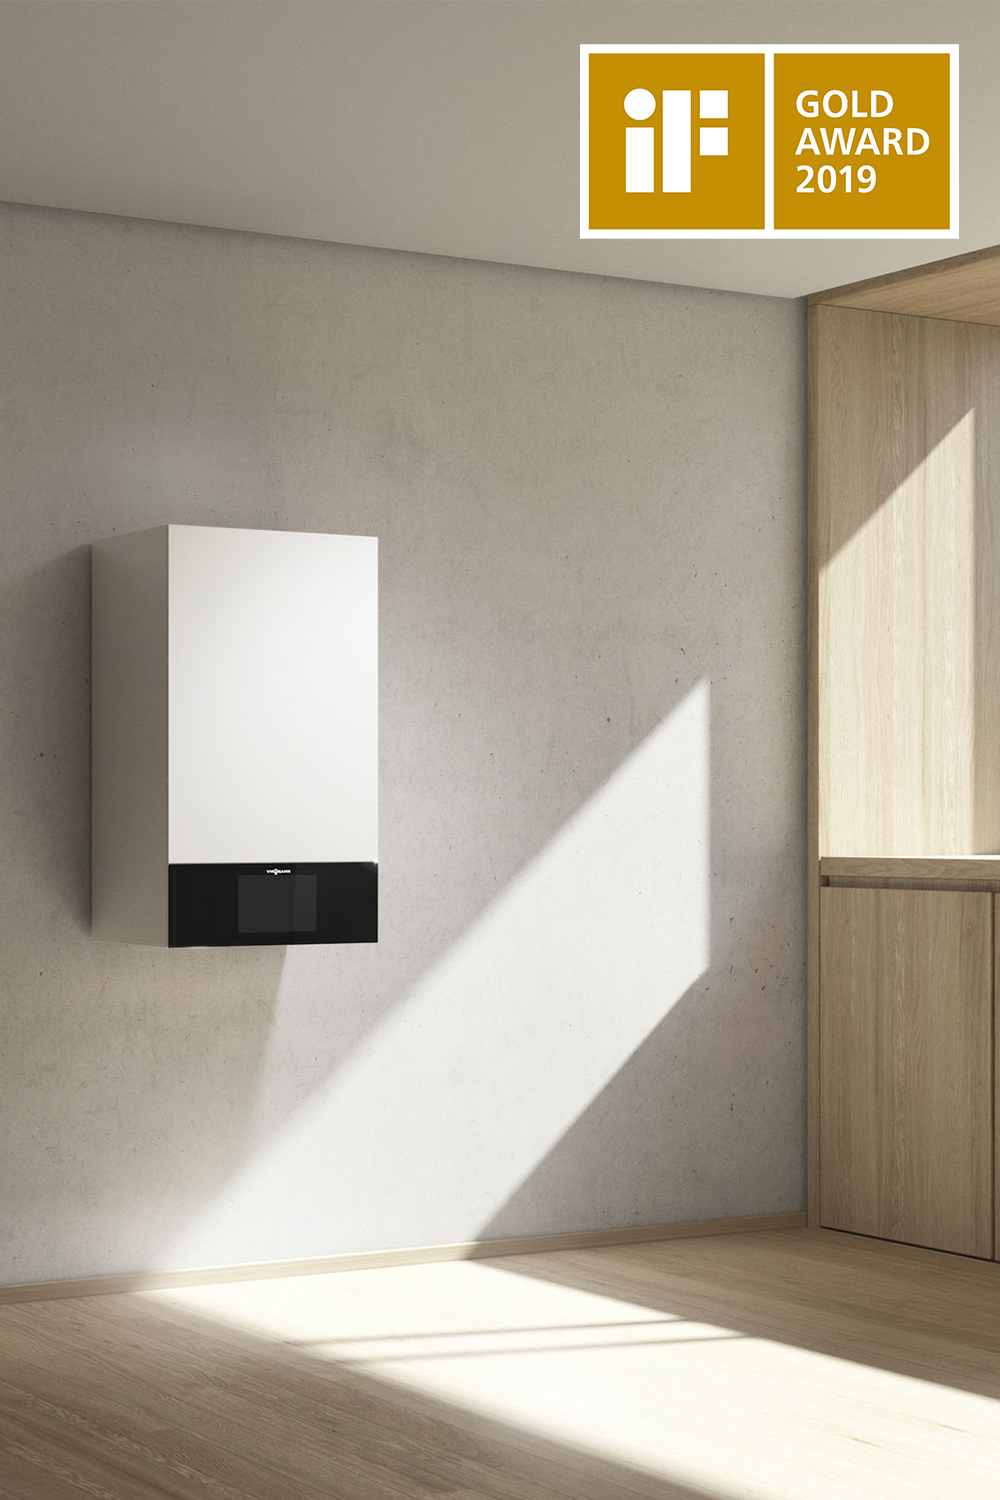 Vitodens 300 Gas Fired Boiler By Viessmann In 2020 Living Spaces Lighting Guide Profile Design